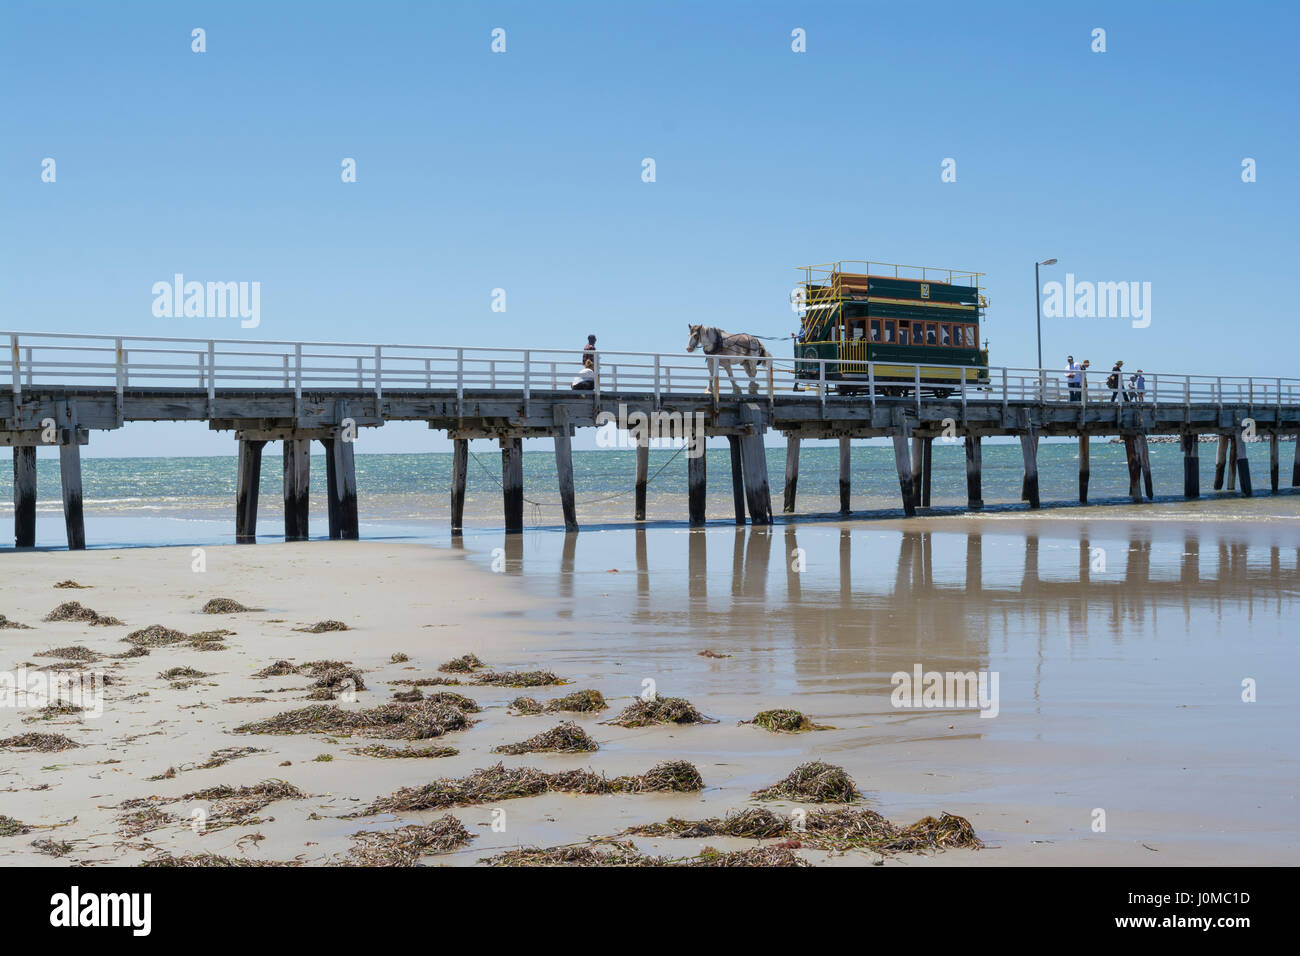 Victor Harbor, SA, Australia - Dec 20, 2016: Horse Drawn Tram filled with tourists travelling along the bridge from - Stock Image